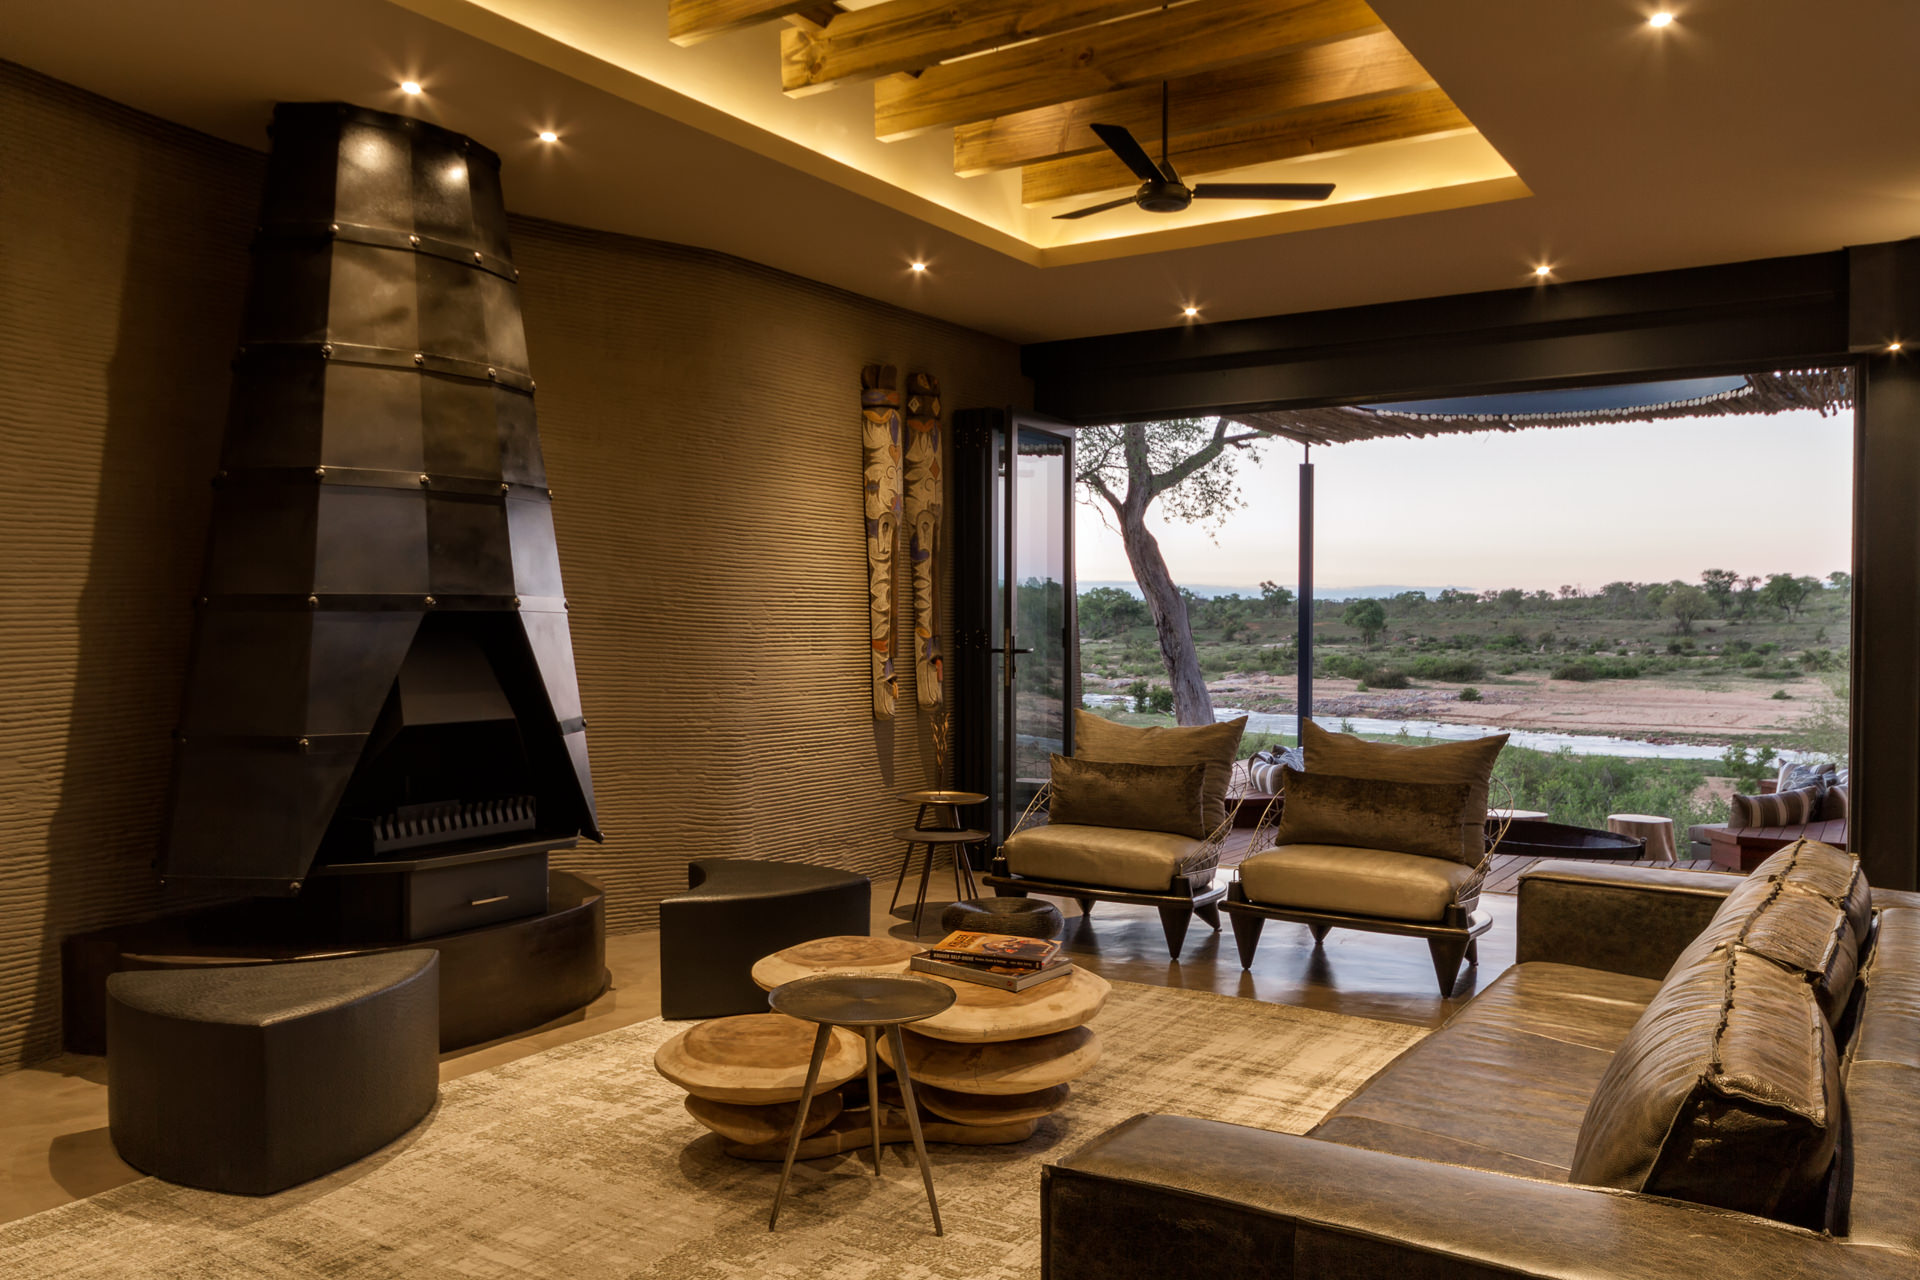 N'Wambu Safari Lodge, Lounge and public space